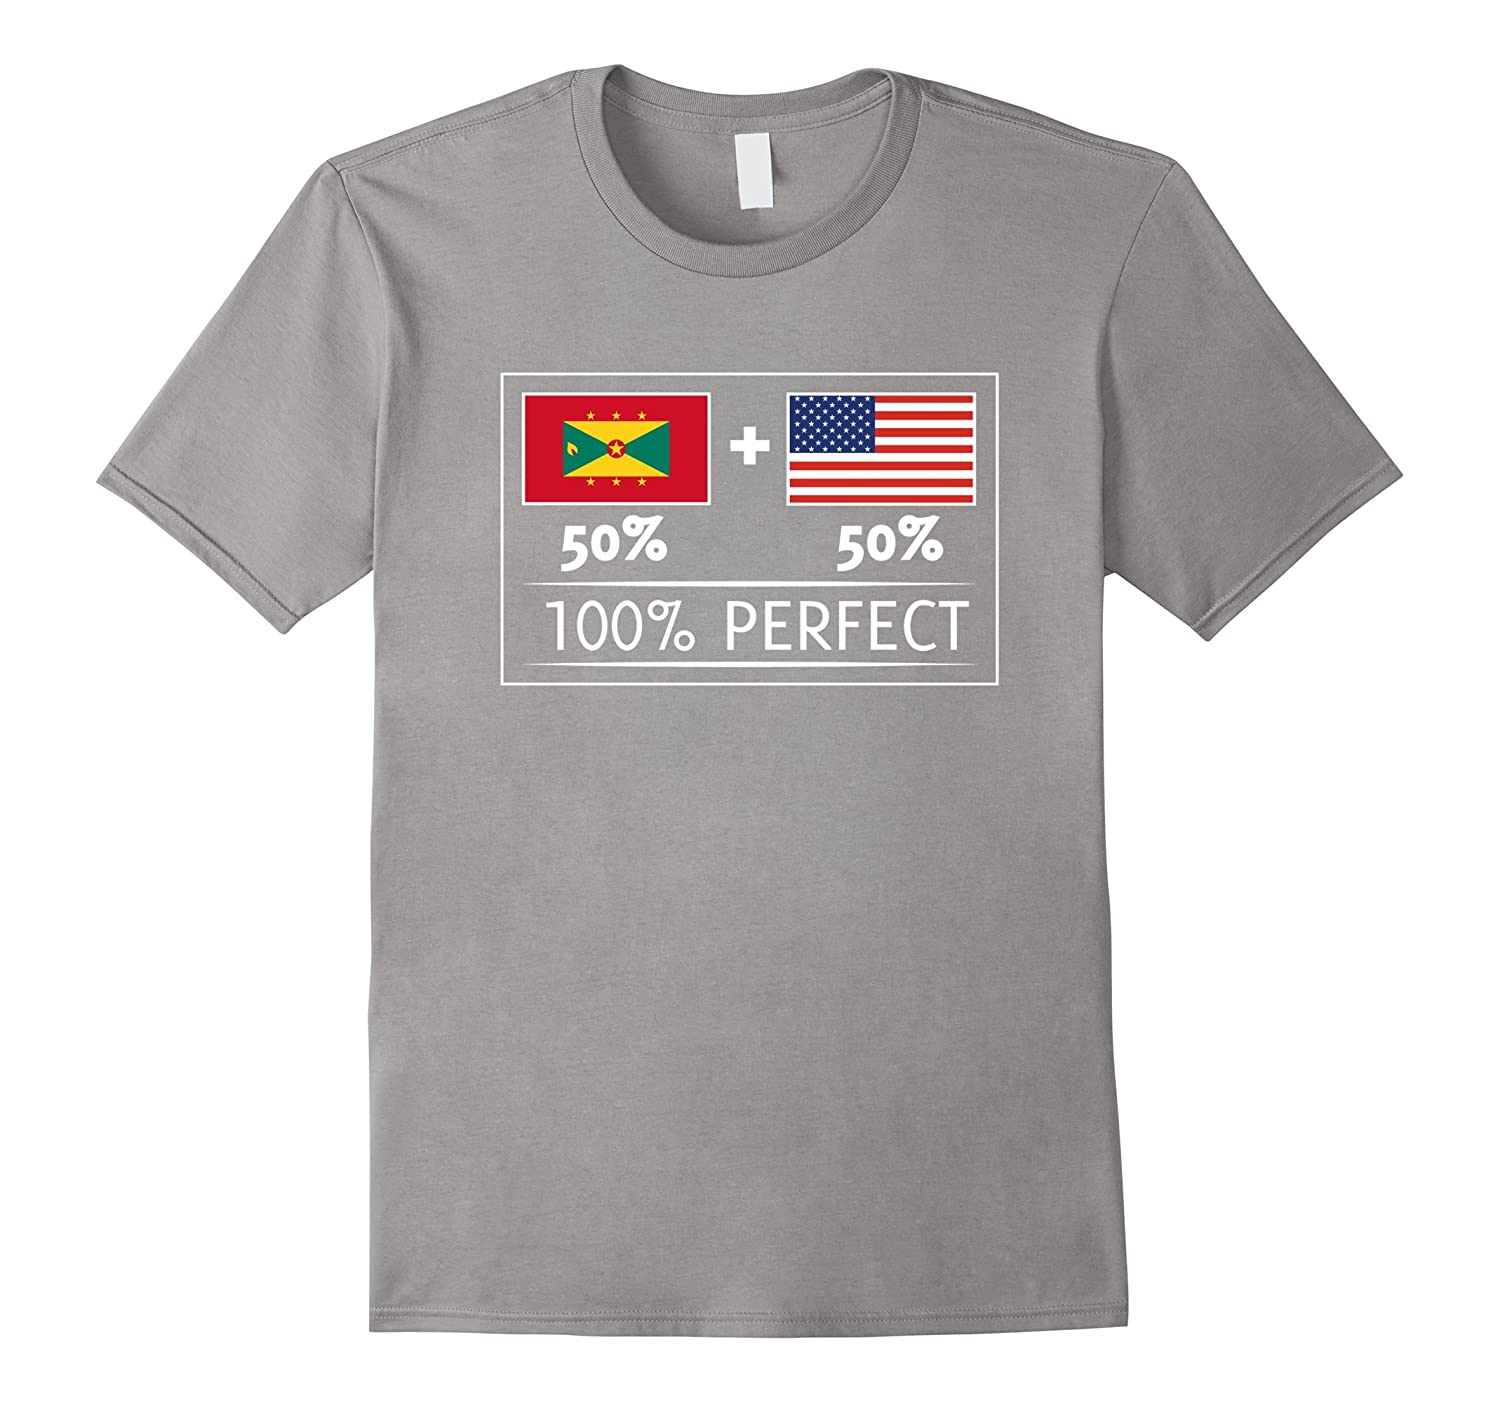 50% GRENADA 50% USA Flags 100% Perfect Tee for Grenadians-T-Shirt